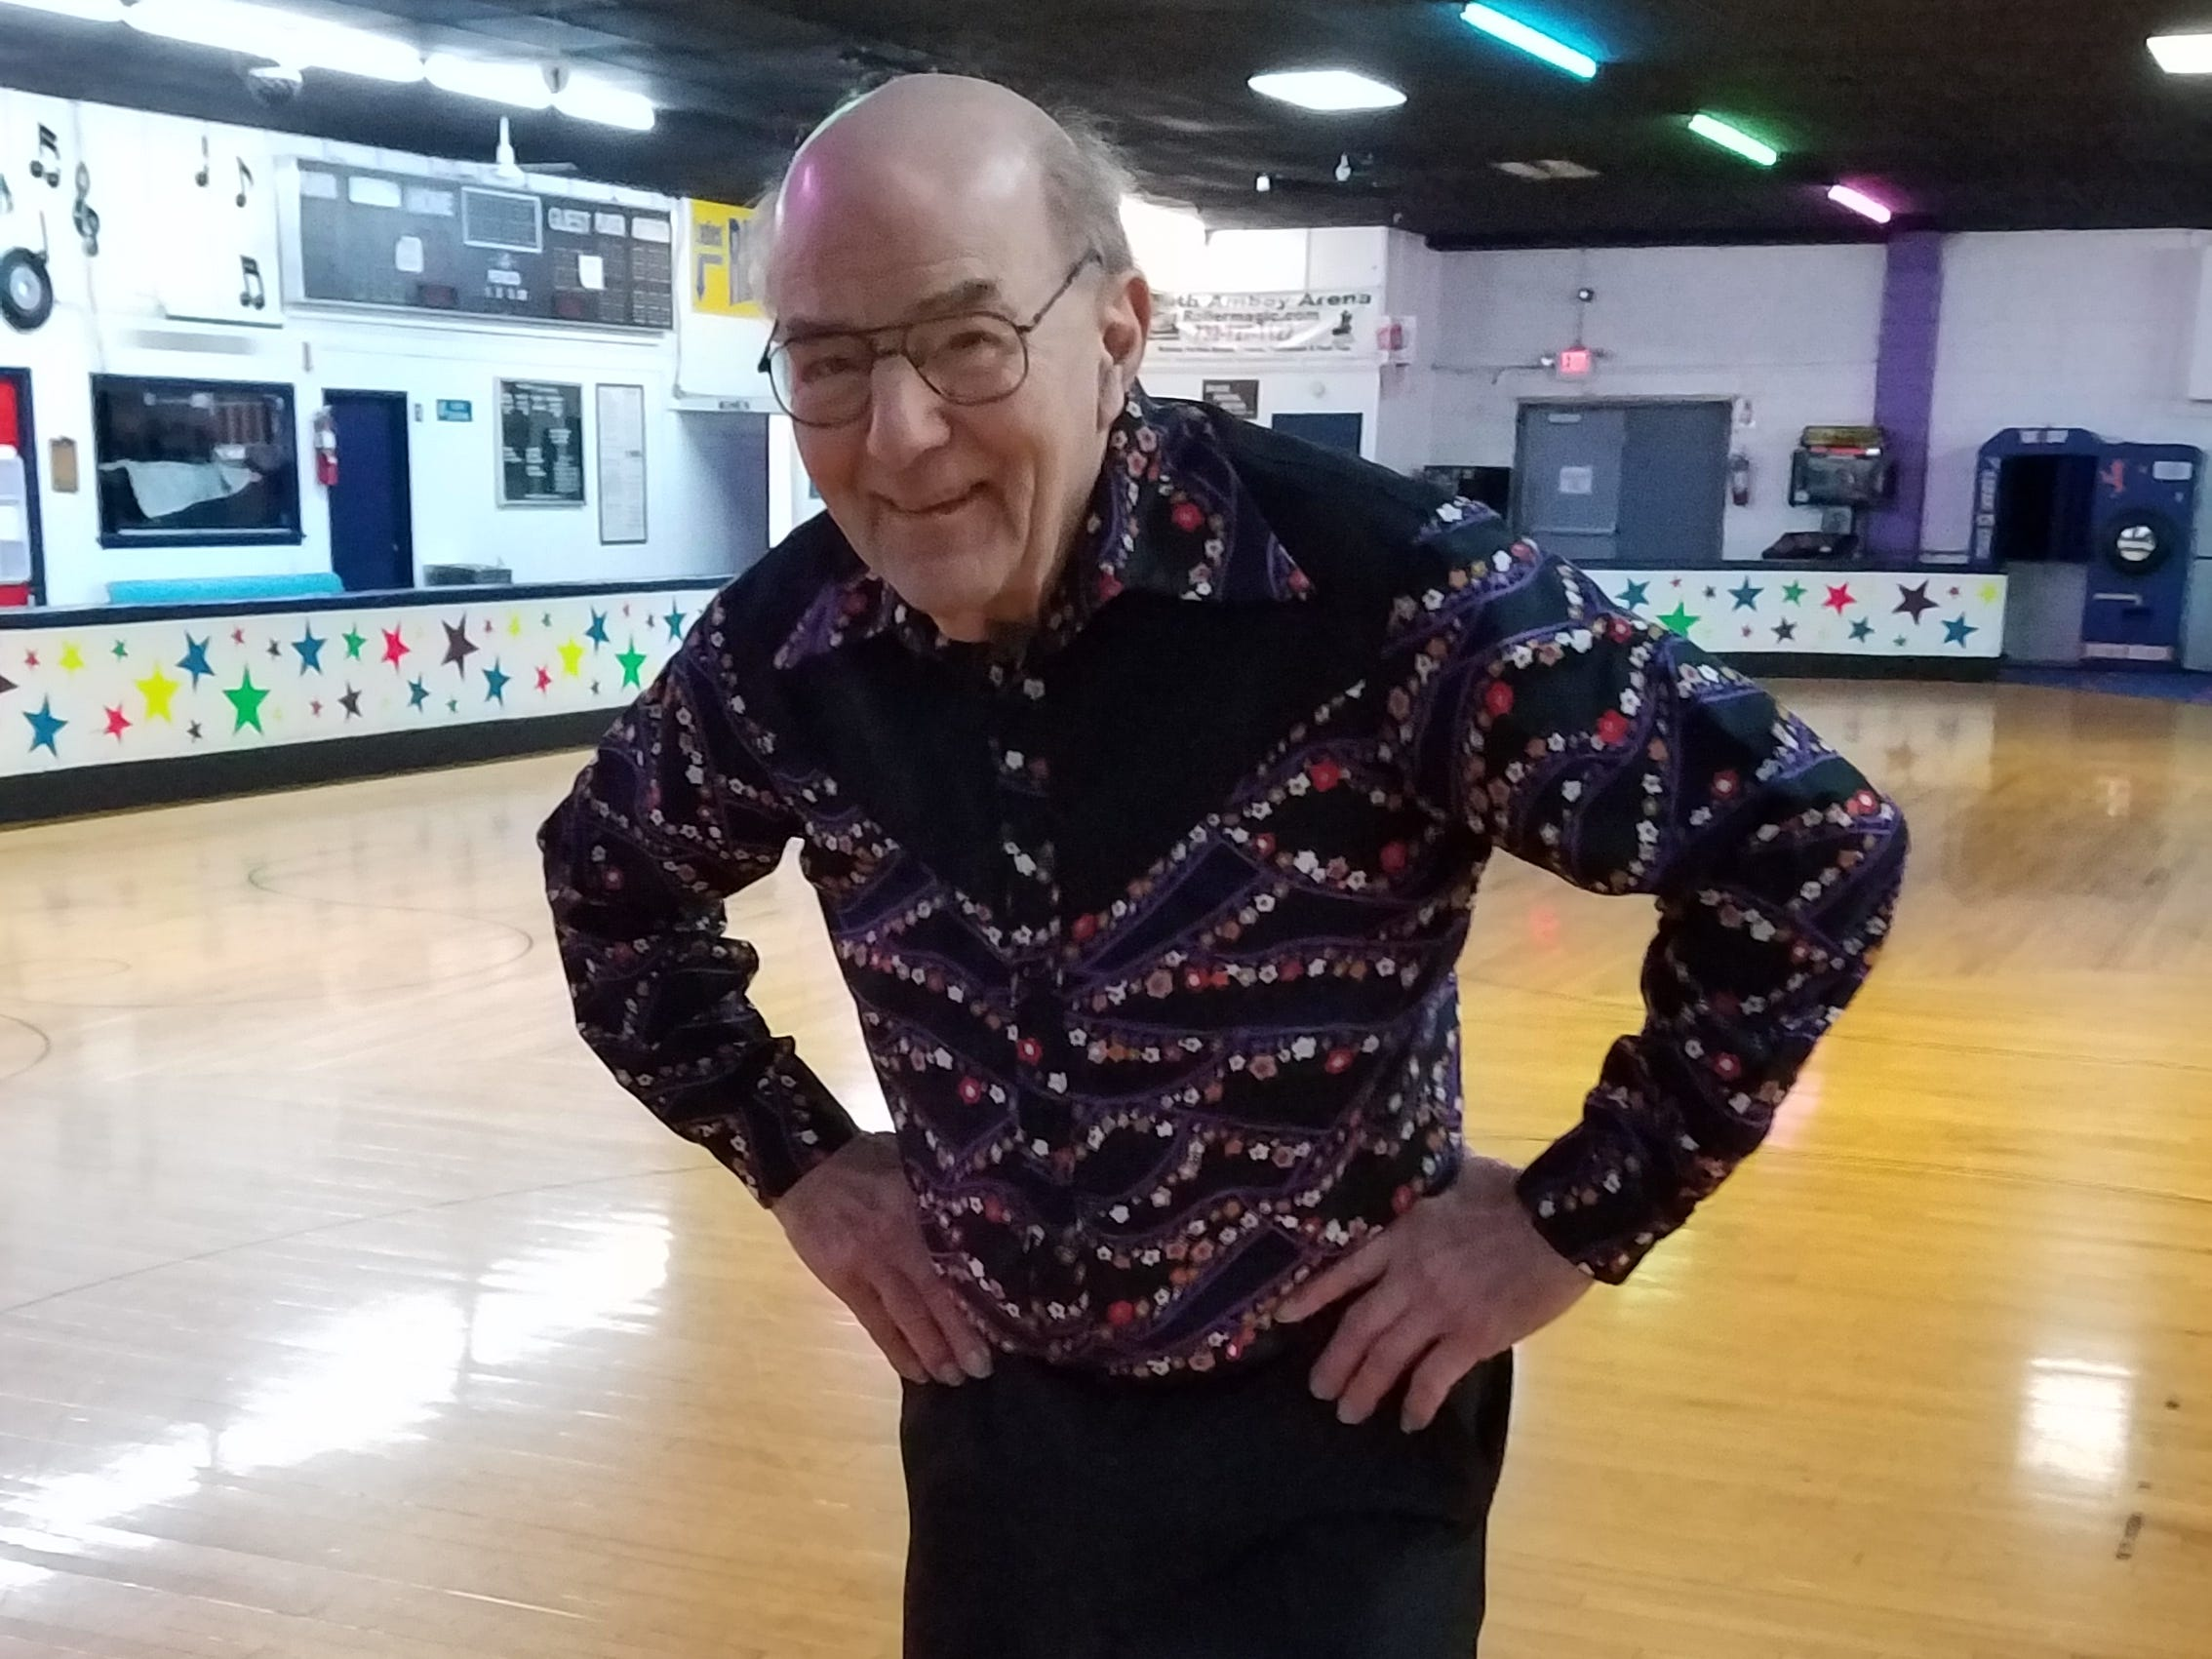 At least twice a week, more than 20 seniors, including Don Thompson of Middletown, regularly gather at South Amboy Arenaand take to the rink for a couple hours of roller skating. They range in age from 55 to 100.